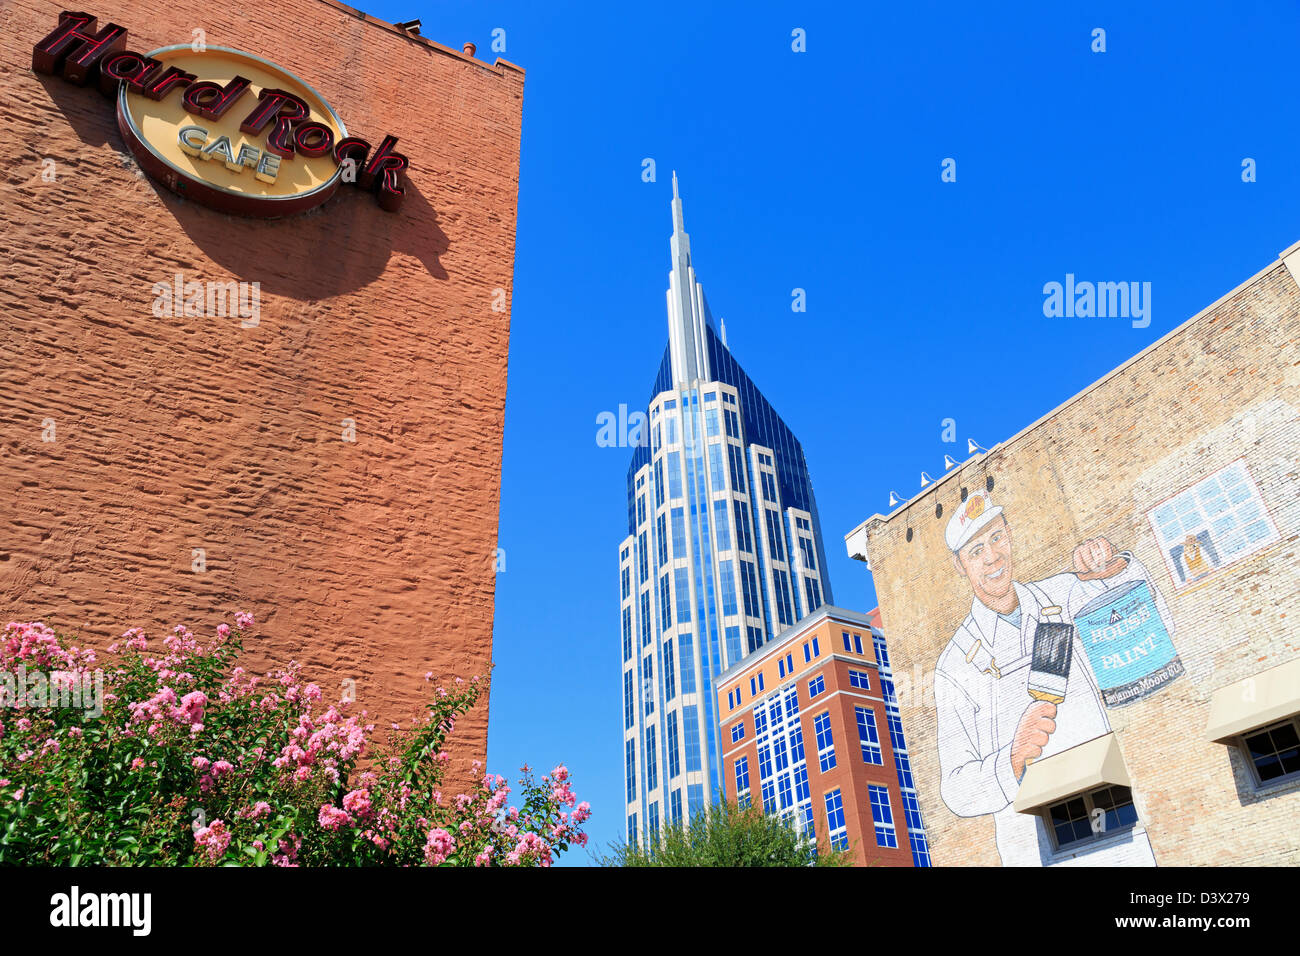 Hard Rock Cafe & 333 Commerce Tower,Nashville,Tennessee,USA - Stock Image